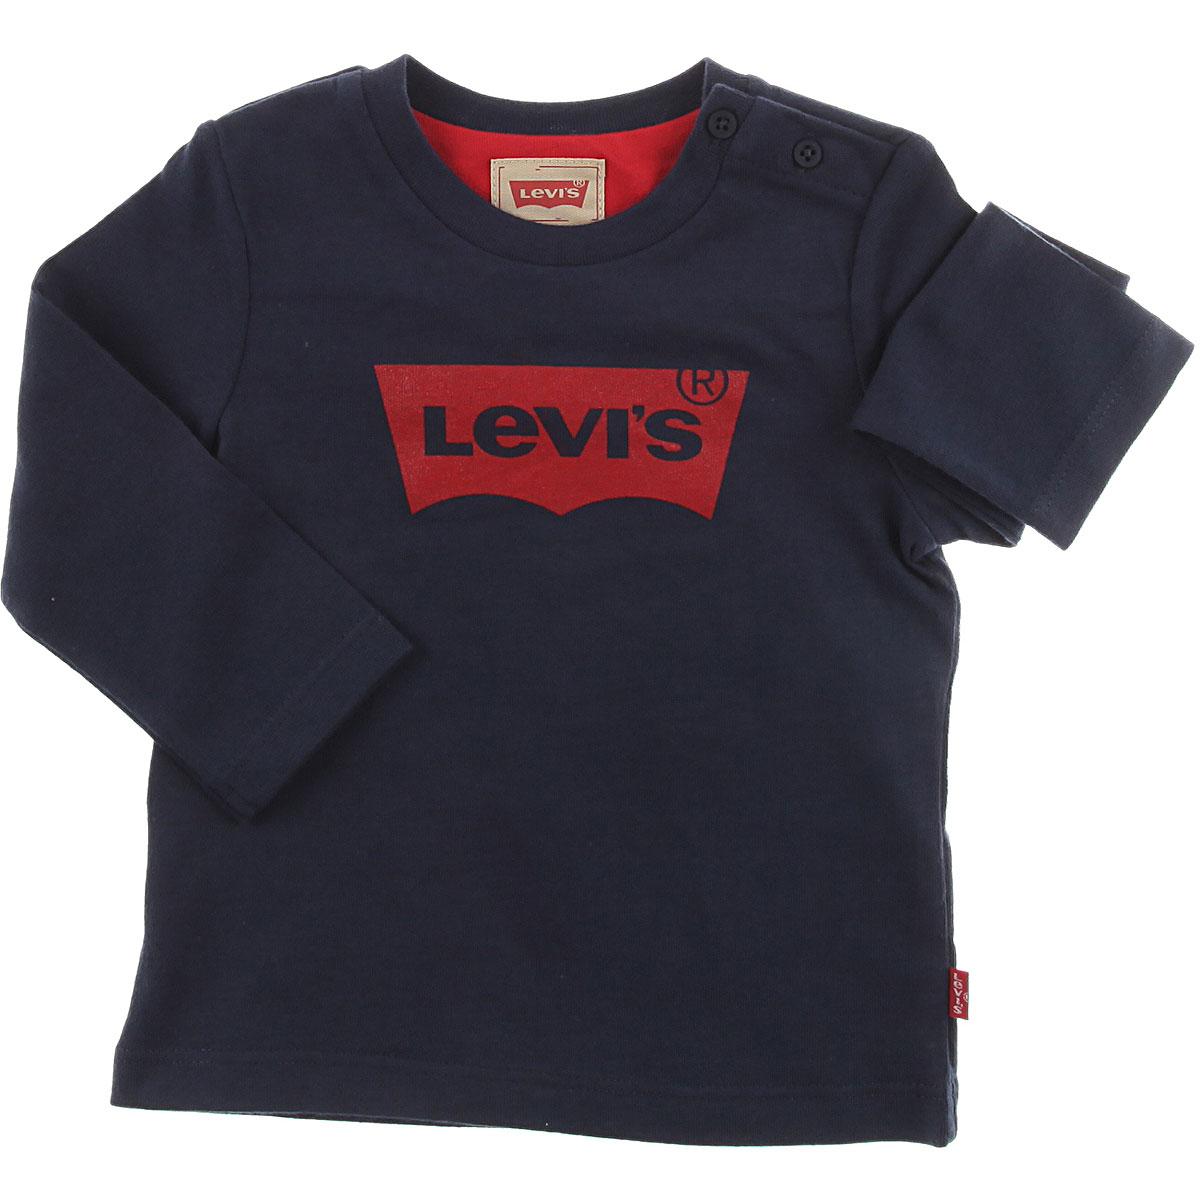 Image of Levis Baby Jacket for Boys, Blue, Cotton, 2017, 12M 18M 2Y 3Y 6M 9M